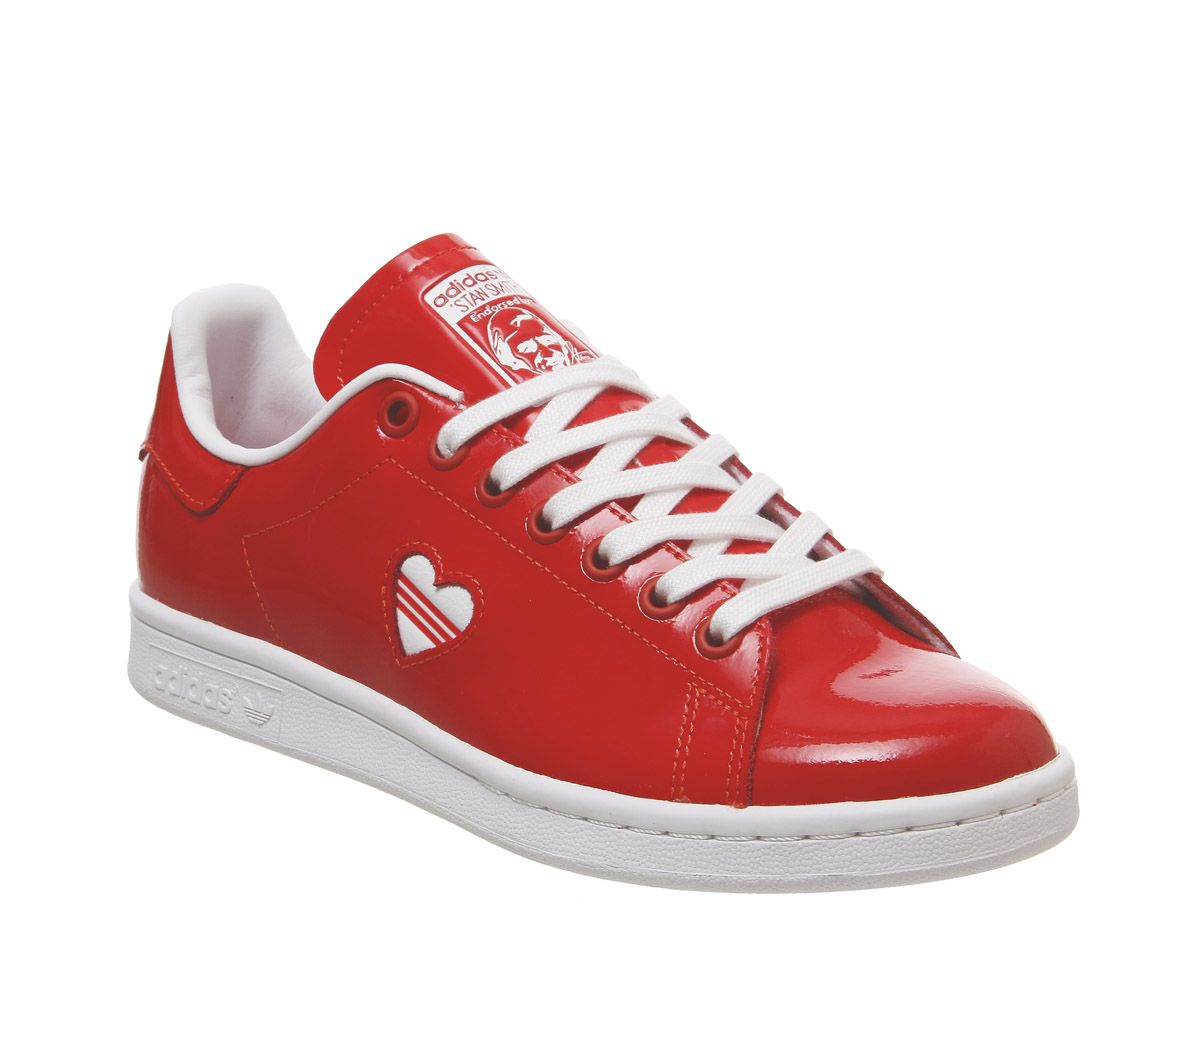 official photos b2626 a9c8d Sentinel Womens Adidas Stan Smith Trainers Red Red Heart Trainers Shoes